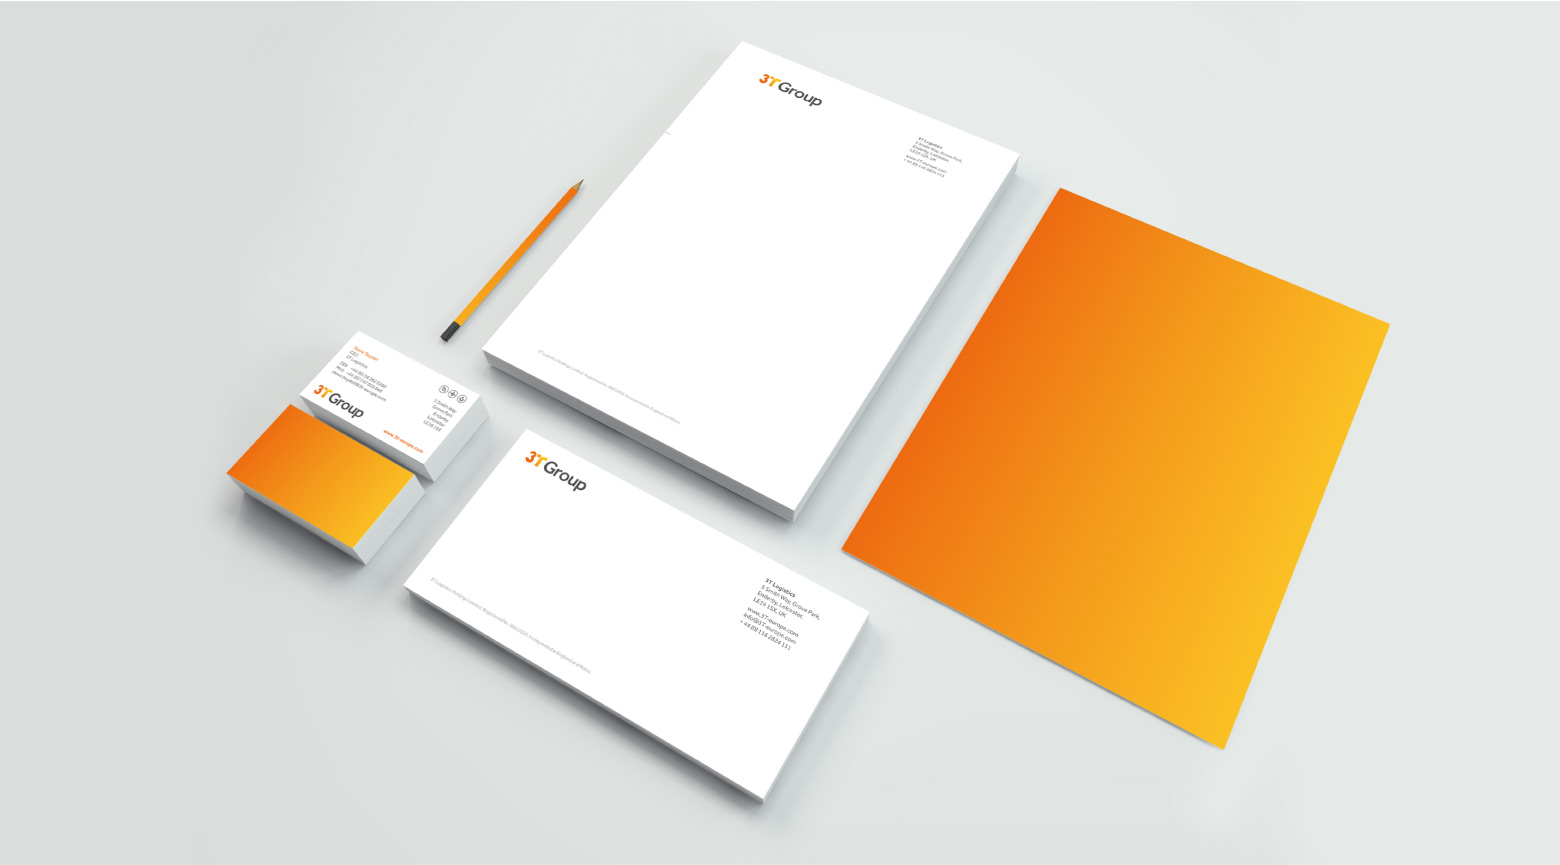 3T Group Stationery design